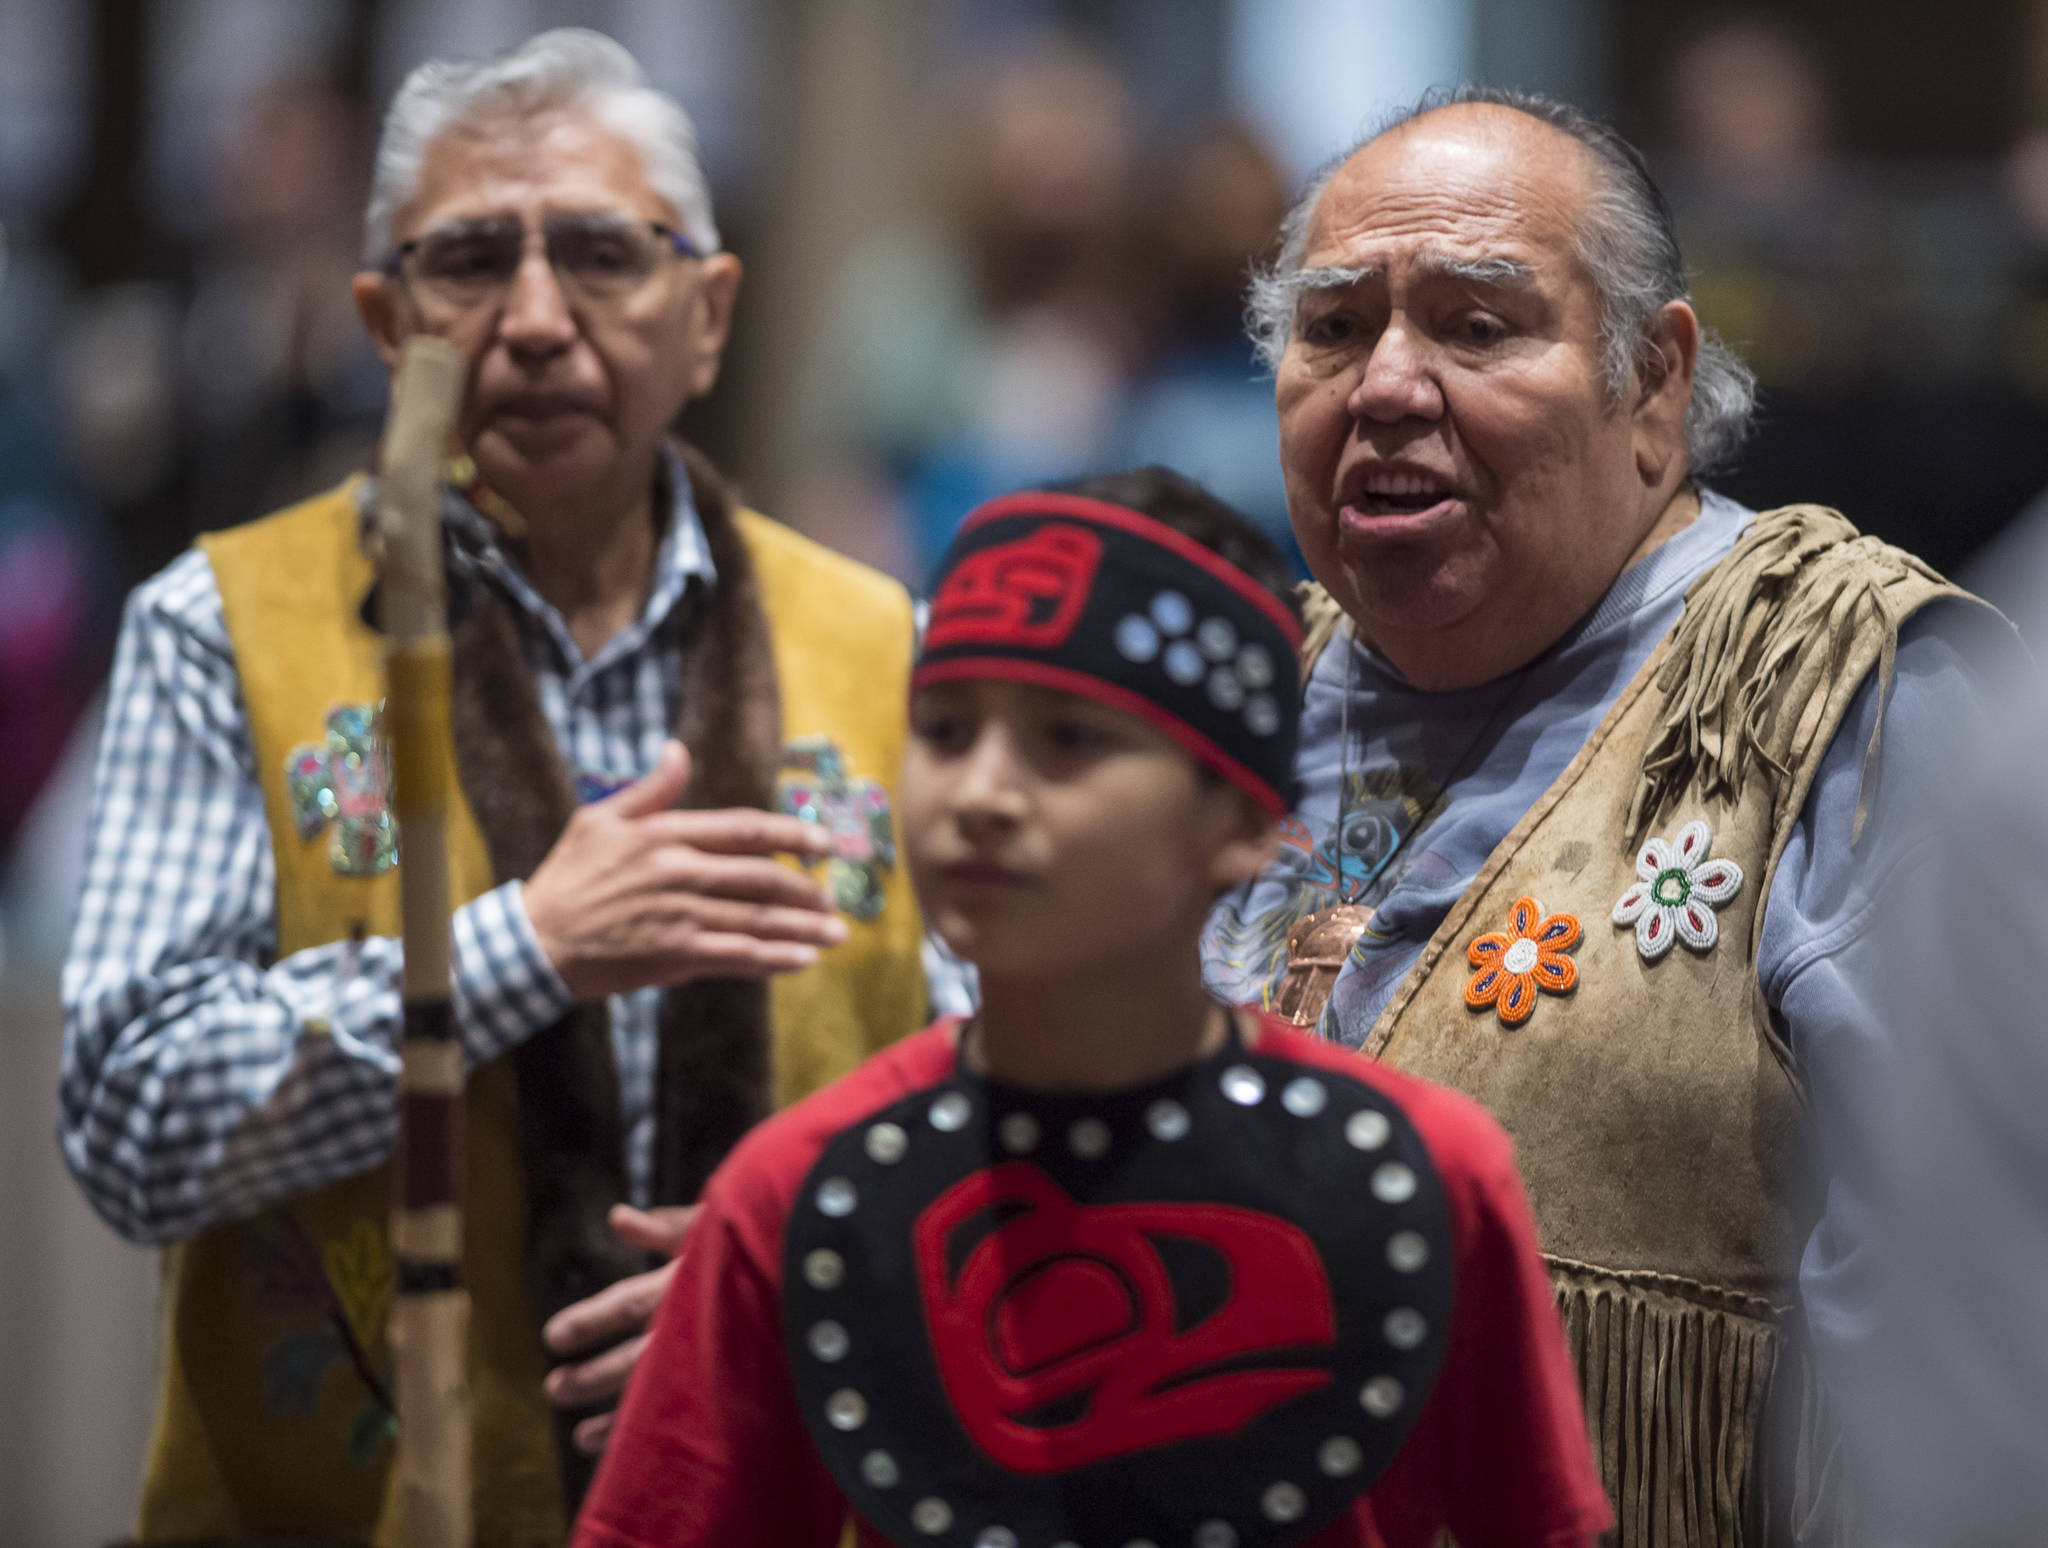 Tlingit elders David Katzeek, right, and Paul Marks, left, watch as Tyler Frisby, a member of the Tlingit Culture Language and Literacy Dance Group from Harborview Elementary School dance exits during the Voices of Our Ancestors Language Summit at Centennial Hall on Tuesday, Nov. 13, 2018. (Michael Penn | Juneau Empire)